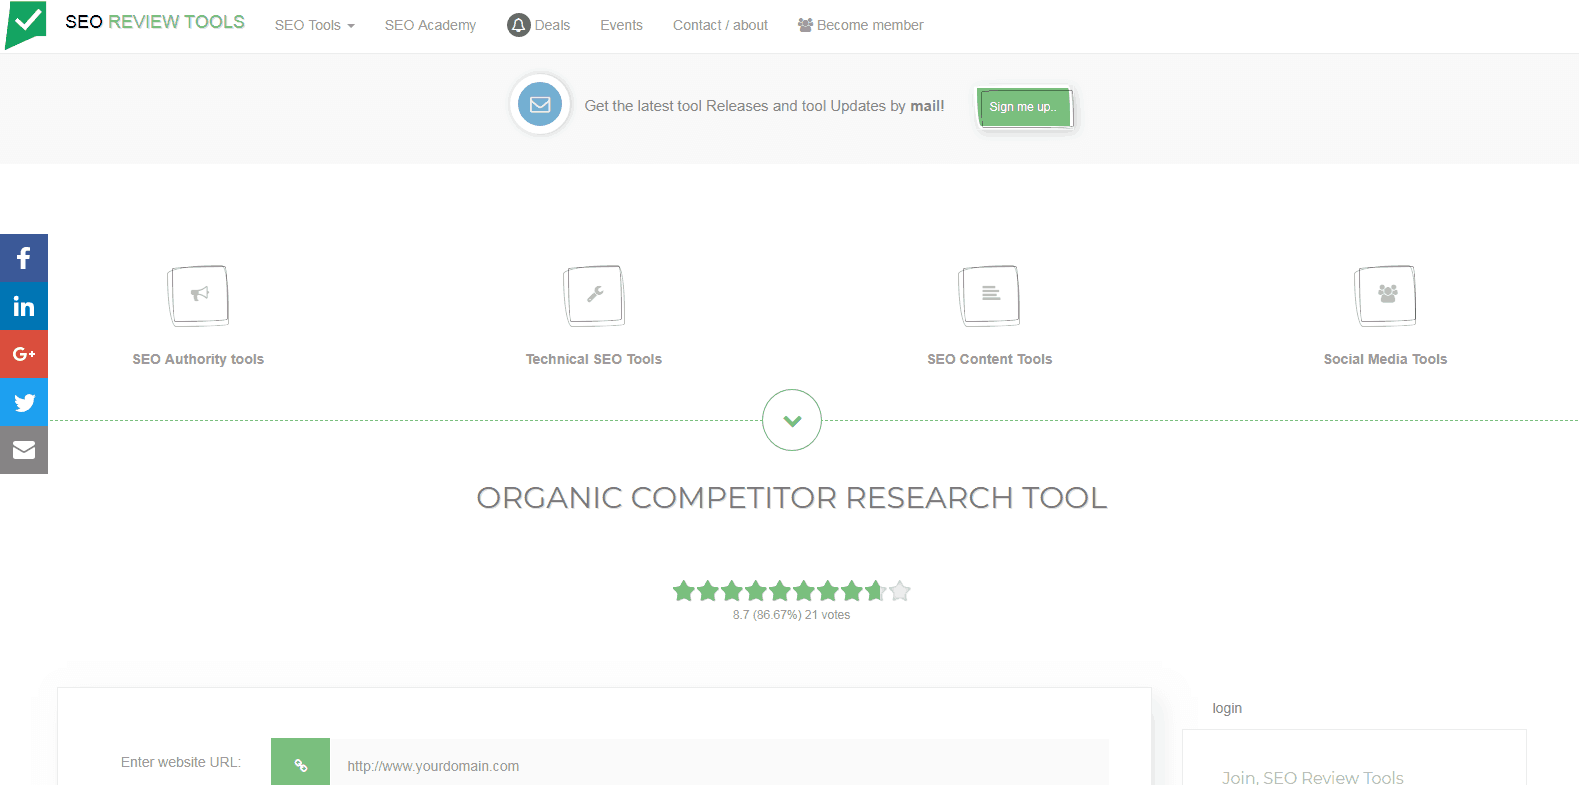 SEO Review Tools Competitor Analysis Tool